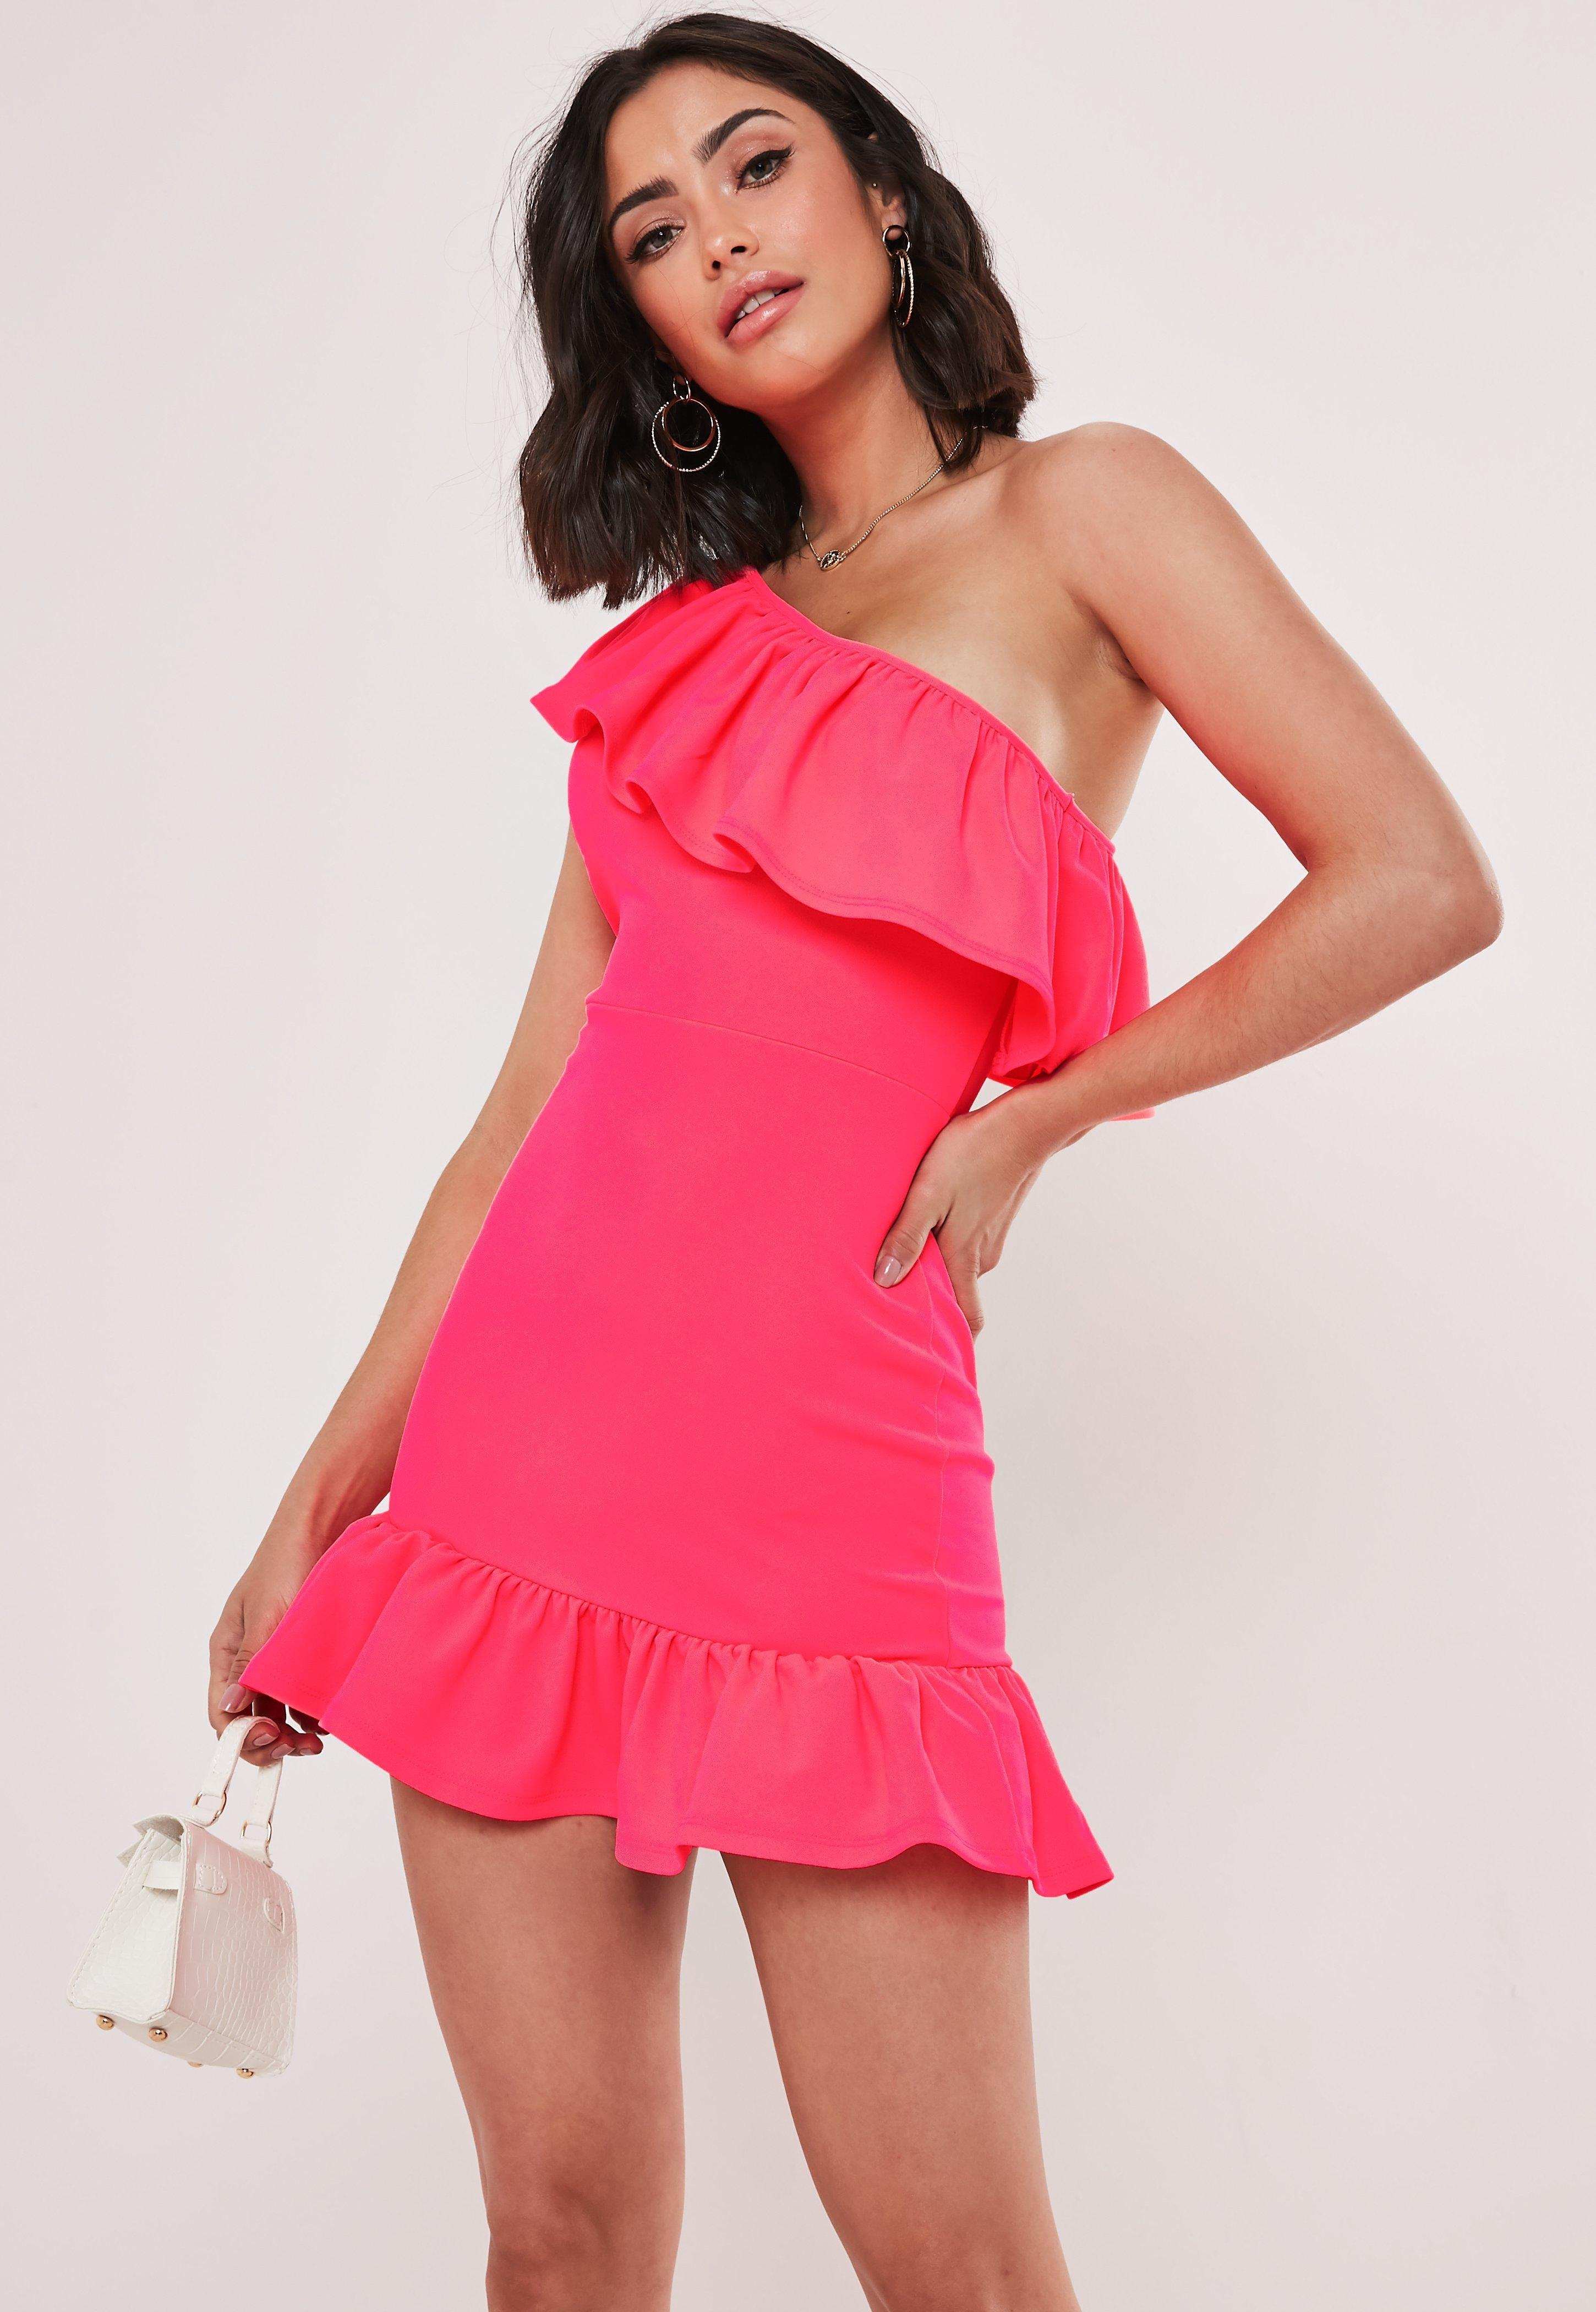 3be5ff3ef012b Pink Dresses | Coral & Hot Pink Dresses - Missguided